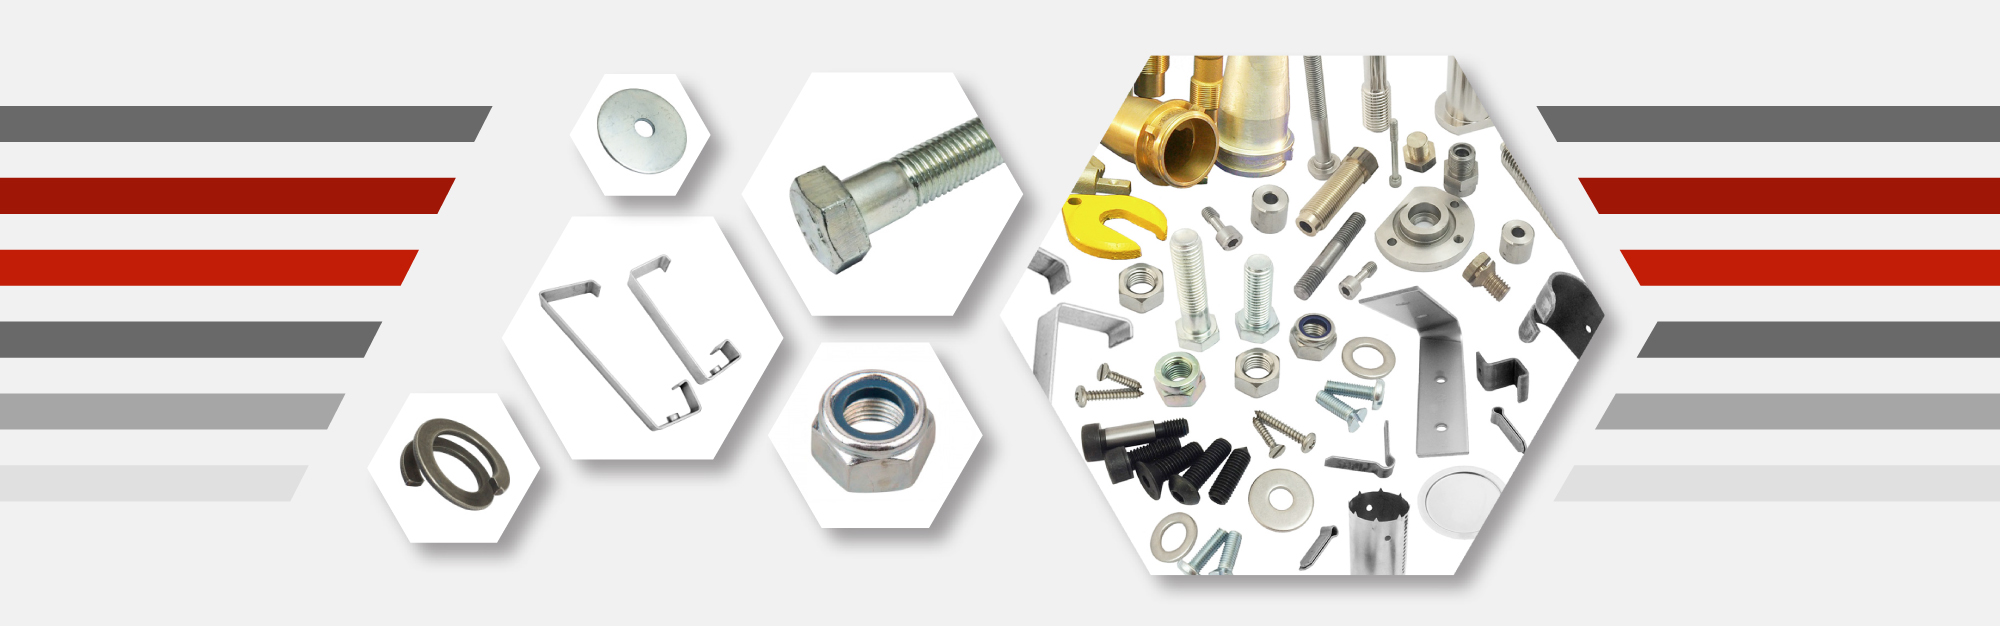 Archerdale Distributors of Fasteners, Purlin Clips, Pressings, Turned Parts and Castings